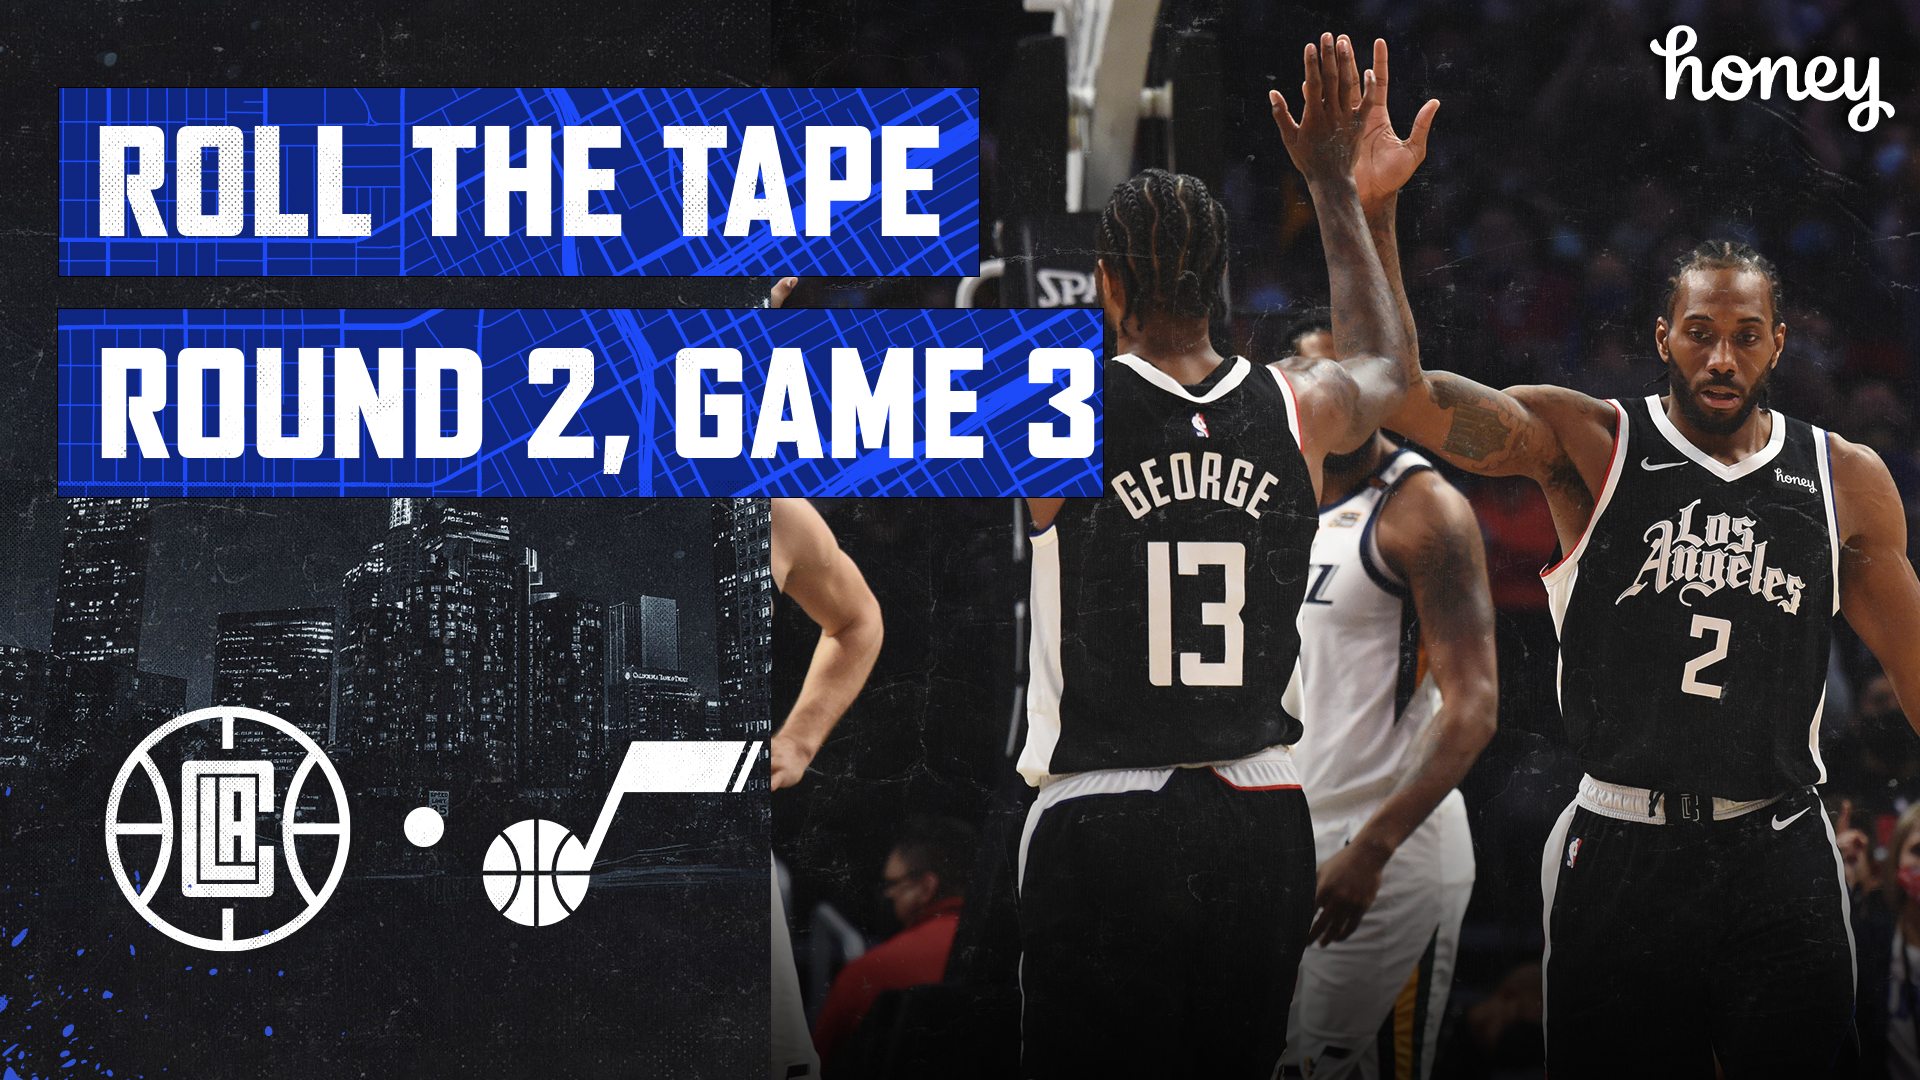 Roll The Tape | Clippers Explode for 26-Point Win Over Jazz in Game 3 (6.12.21)